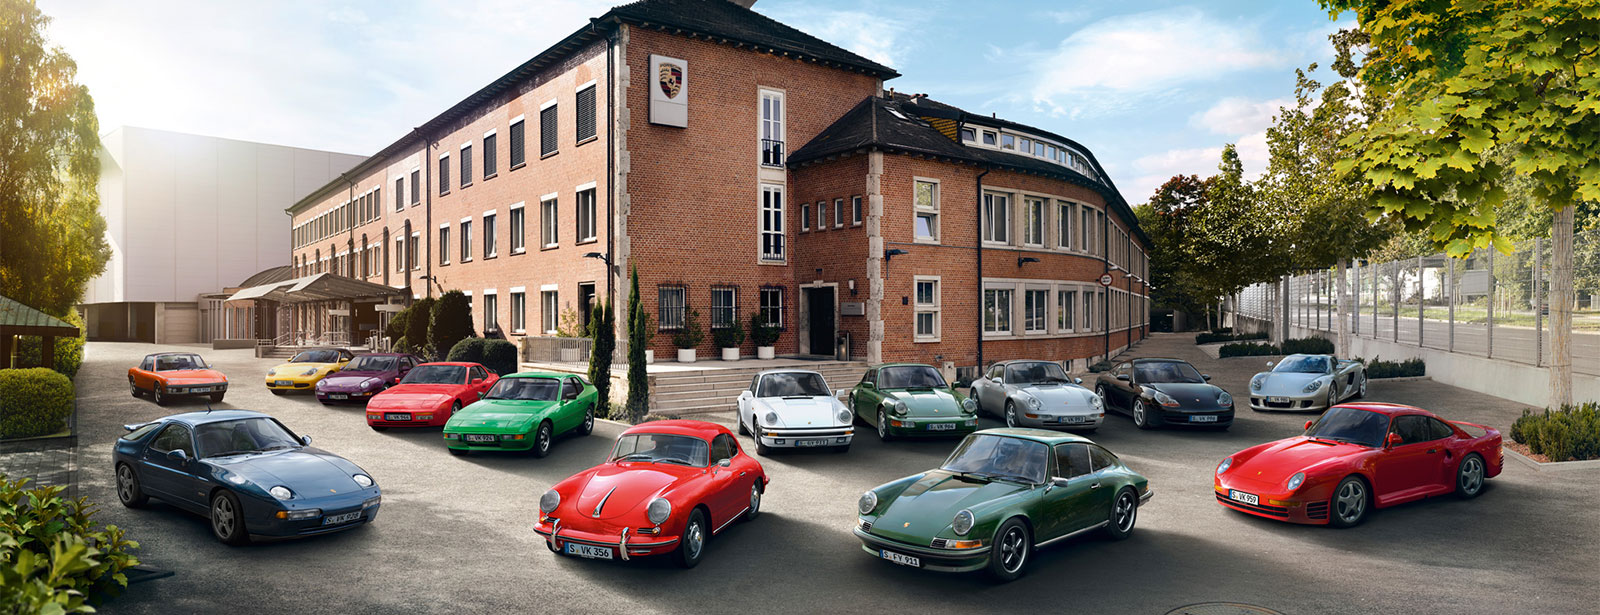 Porsche Classic Partner | Porsche Classic Vehicle Tracking System